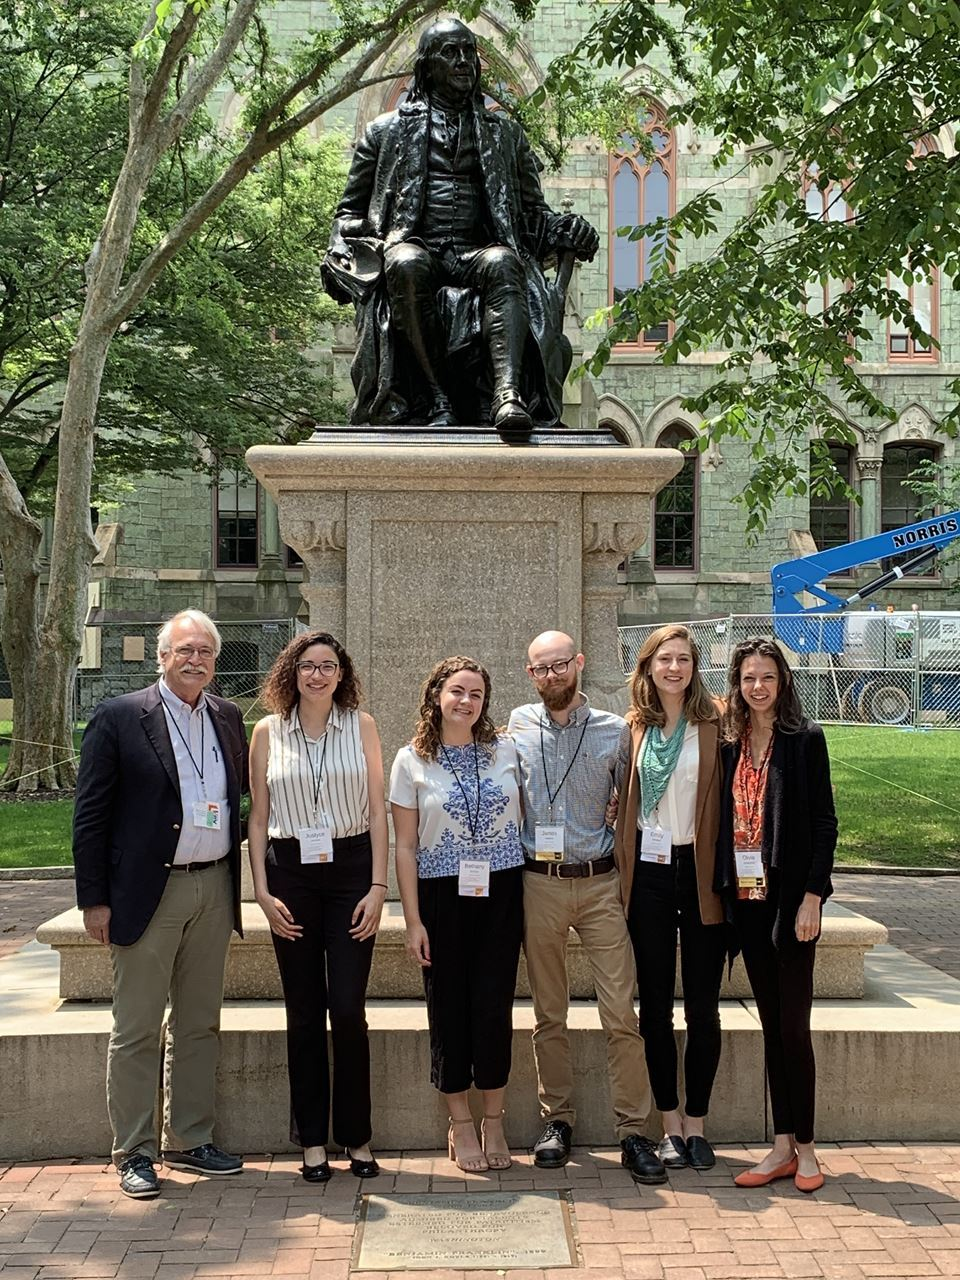 University of Delaware Ambassadors in front of Ben Franklin statue. L to R Ritchie Garrison (Director of Winterthur Program), Justyce Bennett (Winterthur, Class of 2021), Bethany McGlyn (Winterthur, Class of 2020), James Kelleher (Winterthur, Class of 2020), Emily Whitted (Winterthur, Class of 2020), and Olivia Armandroff (Winterthur, Class of 2020)